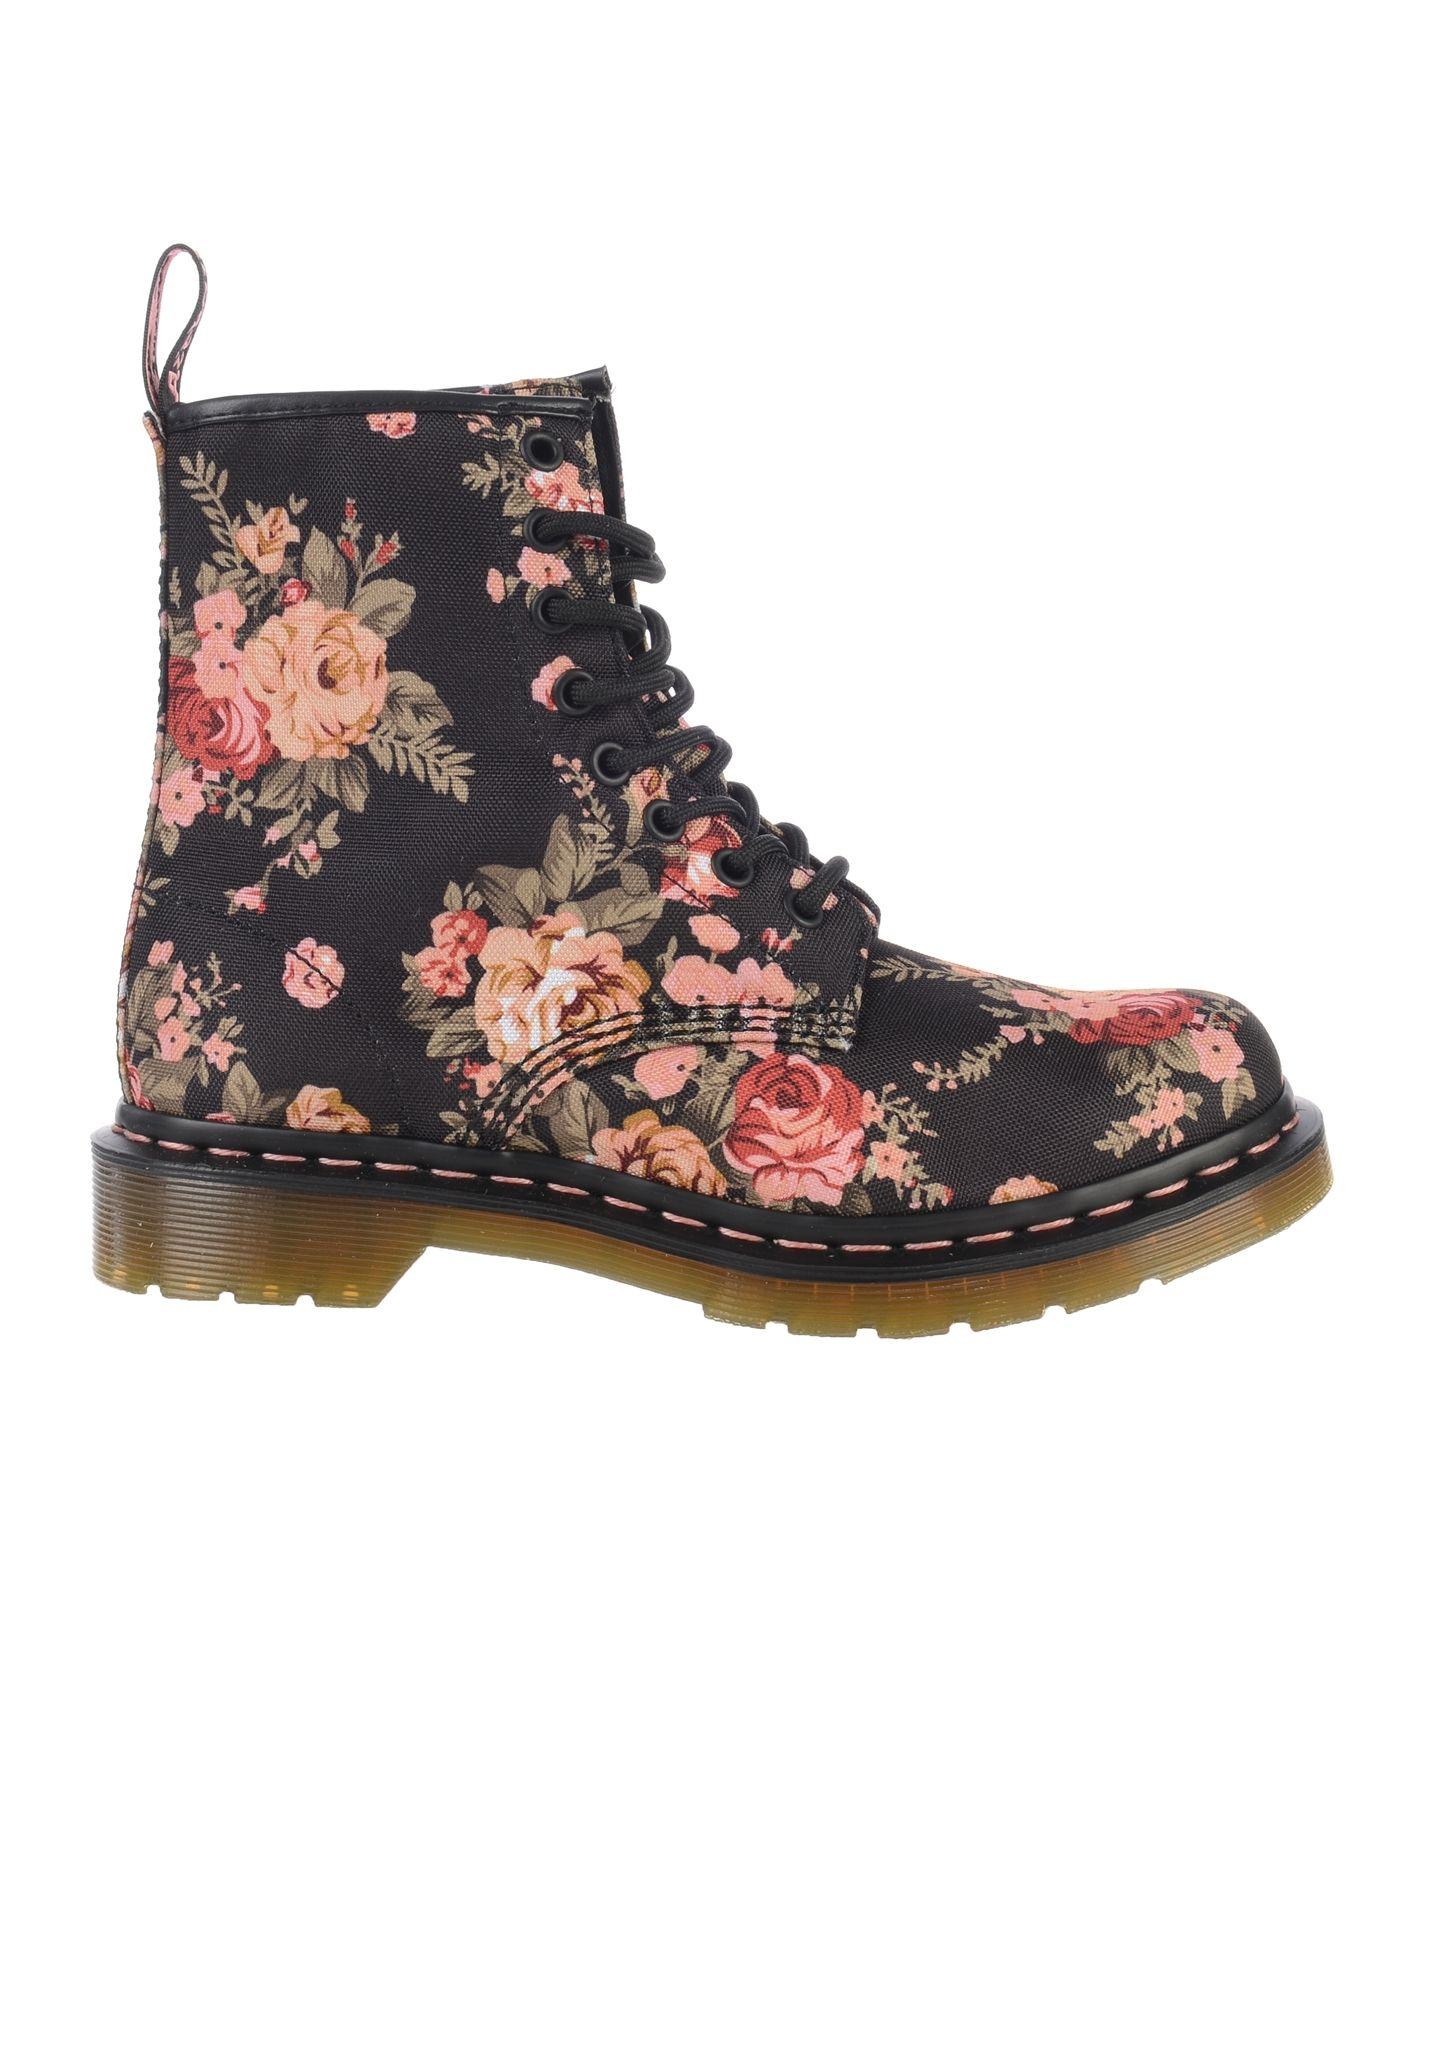 Dr. Martens 1460 Victorian Flowers - Boots for Women - Black - Planet Sports f88fe1a78